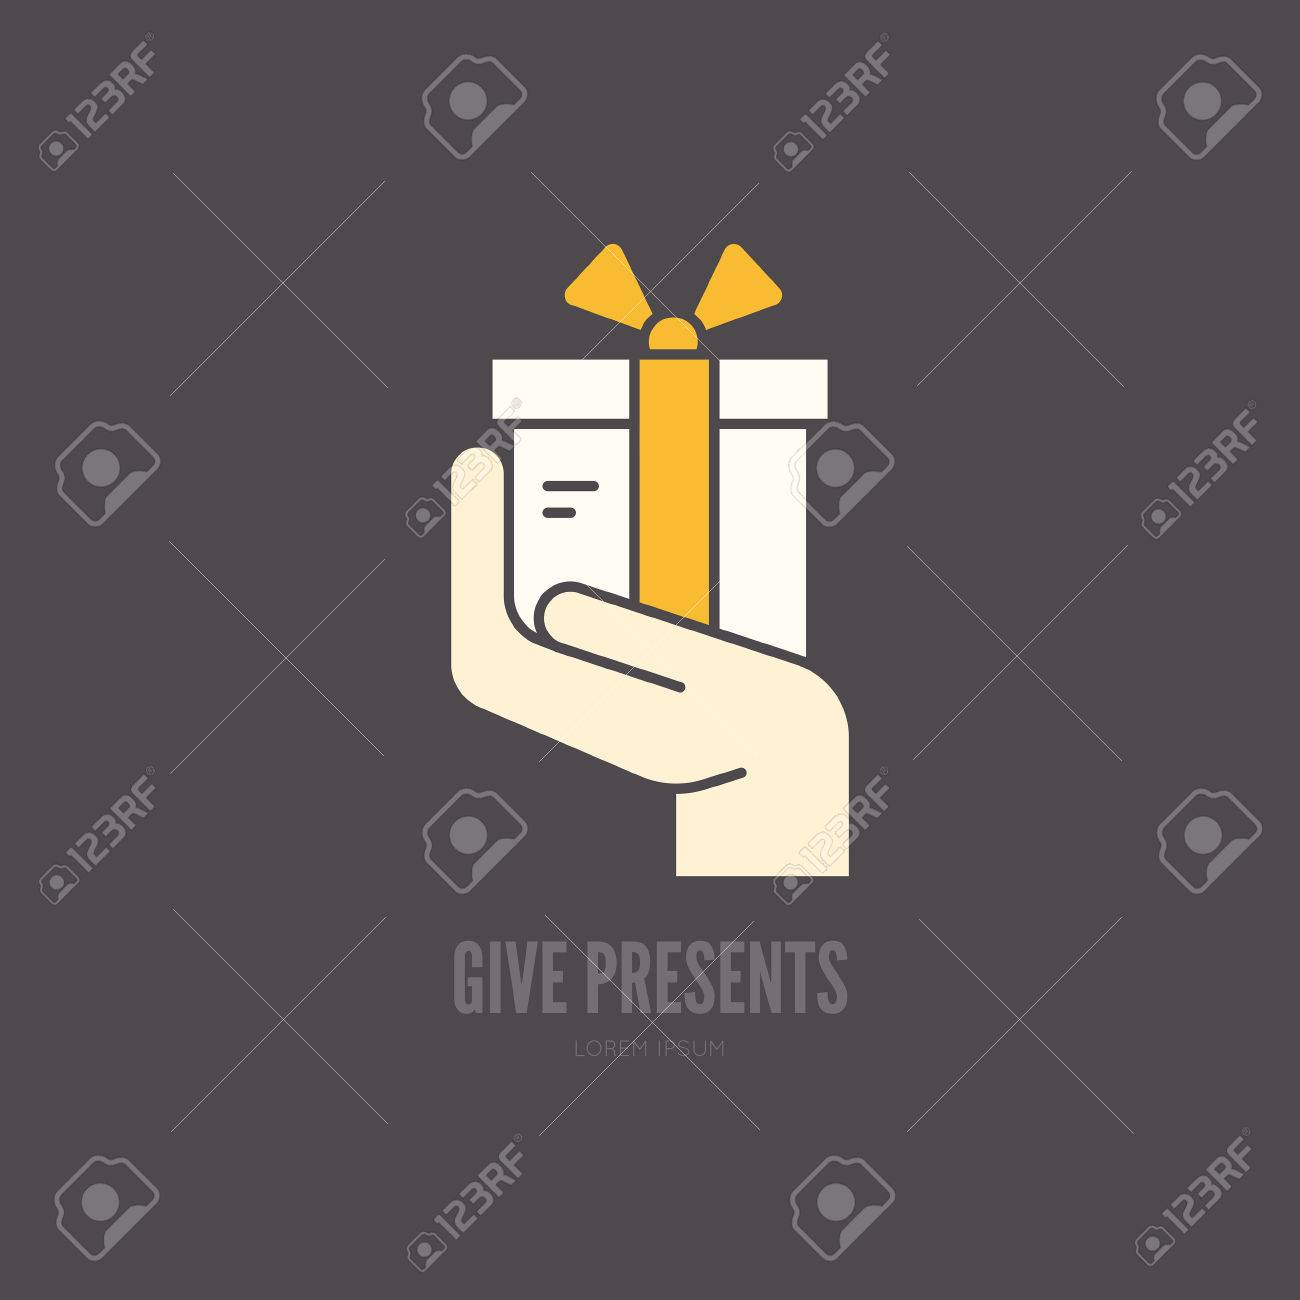 Hand holding a present symbol for charity or donation event hand holding a present symbol for charity or donation event stock vector 53115656 biocorpaavc